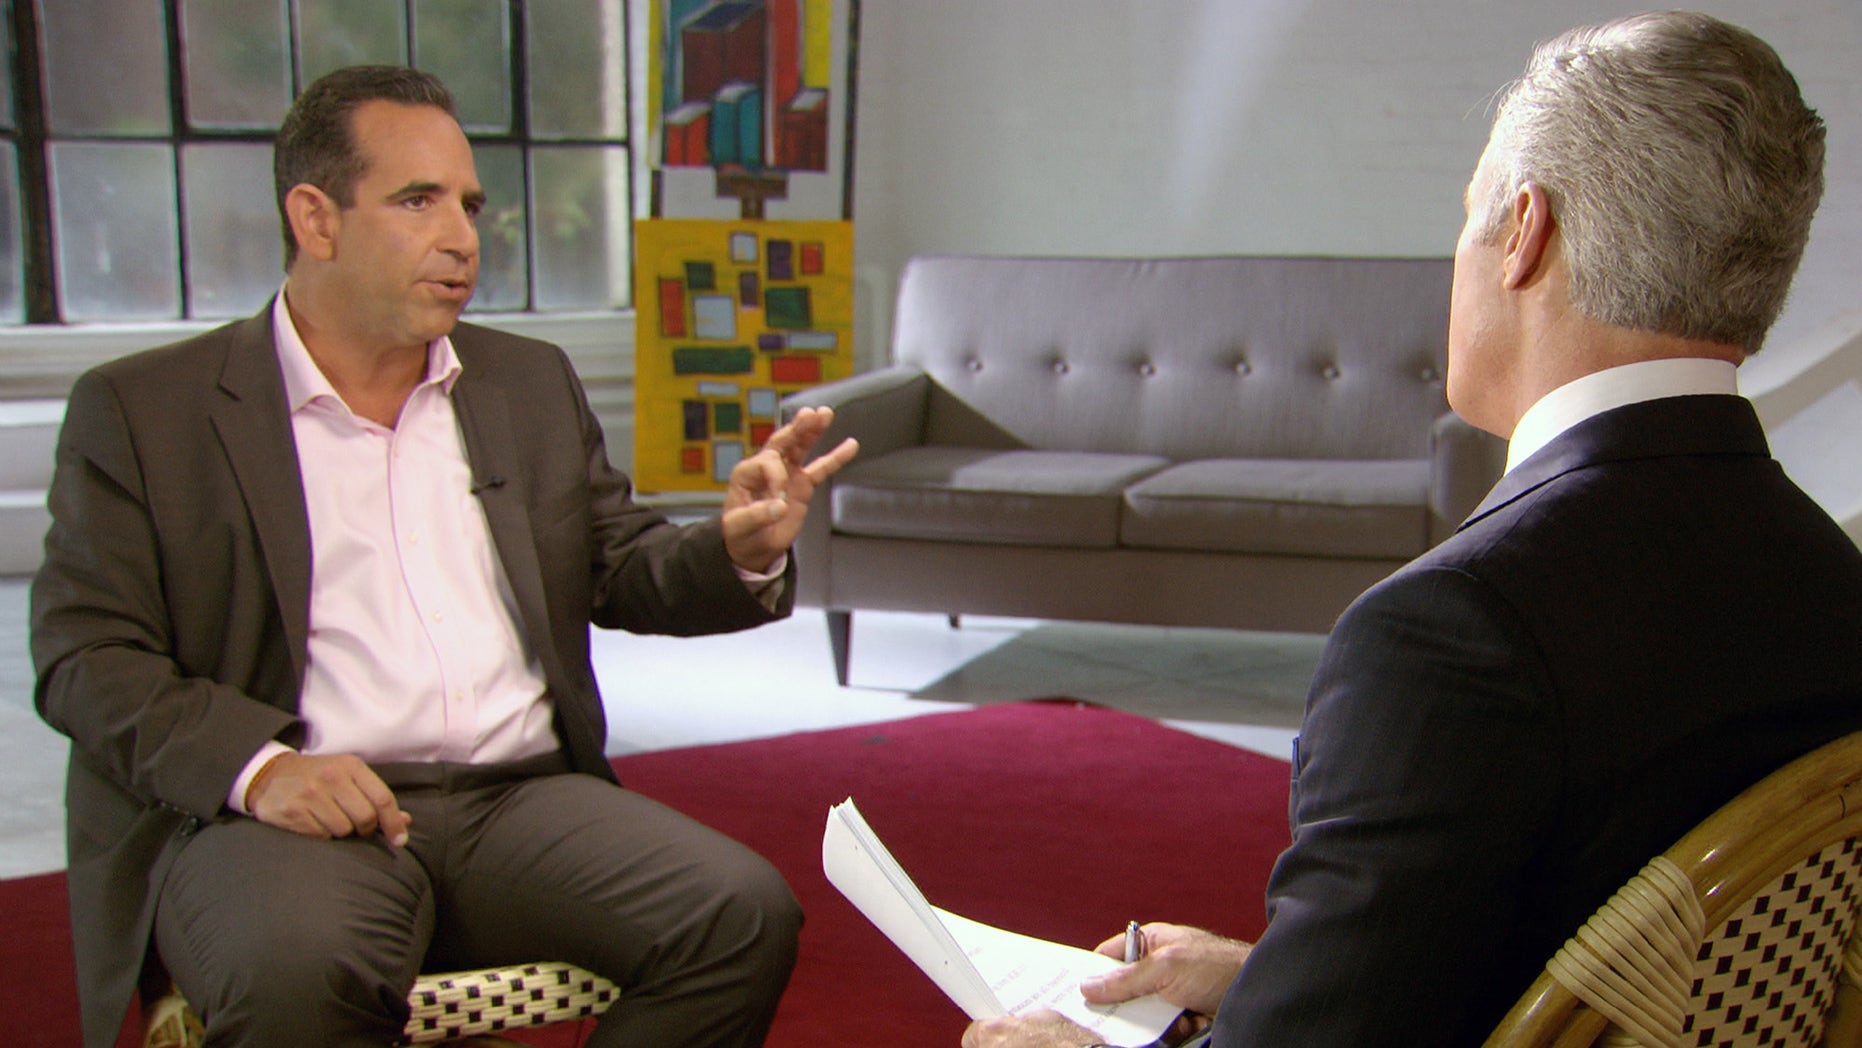 In this undated image taken from video and provided by CBS, Biogenesis founder Anthony Bosch talks about providing banned substances to Alex Rodriguez during a interview in New York that will air on the 60 Minutes broadcast Sunday, Jan. 12, 2014. On Saturday, Jan. 11, 2014 an arbitrator ruled that the NY Yankees' third baseman will have to sit out 162 games for his illegal use of performance enhancing drugs. (AP Photo/CBS) MANDATORY CREDIT, NO SALES, NO ARCHIVE, FOR NORTH AMERICAN USE ONLY